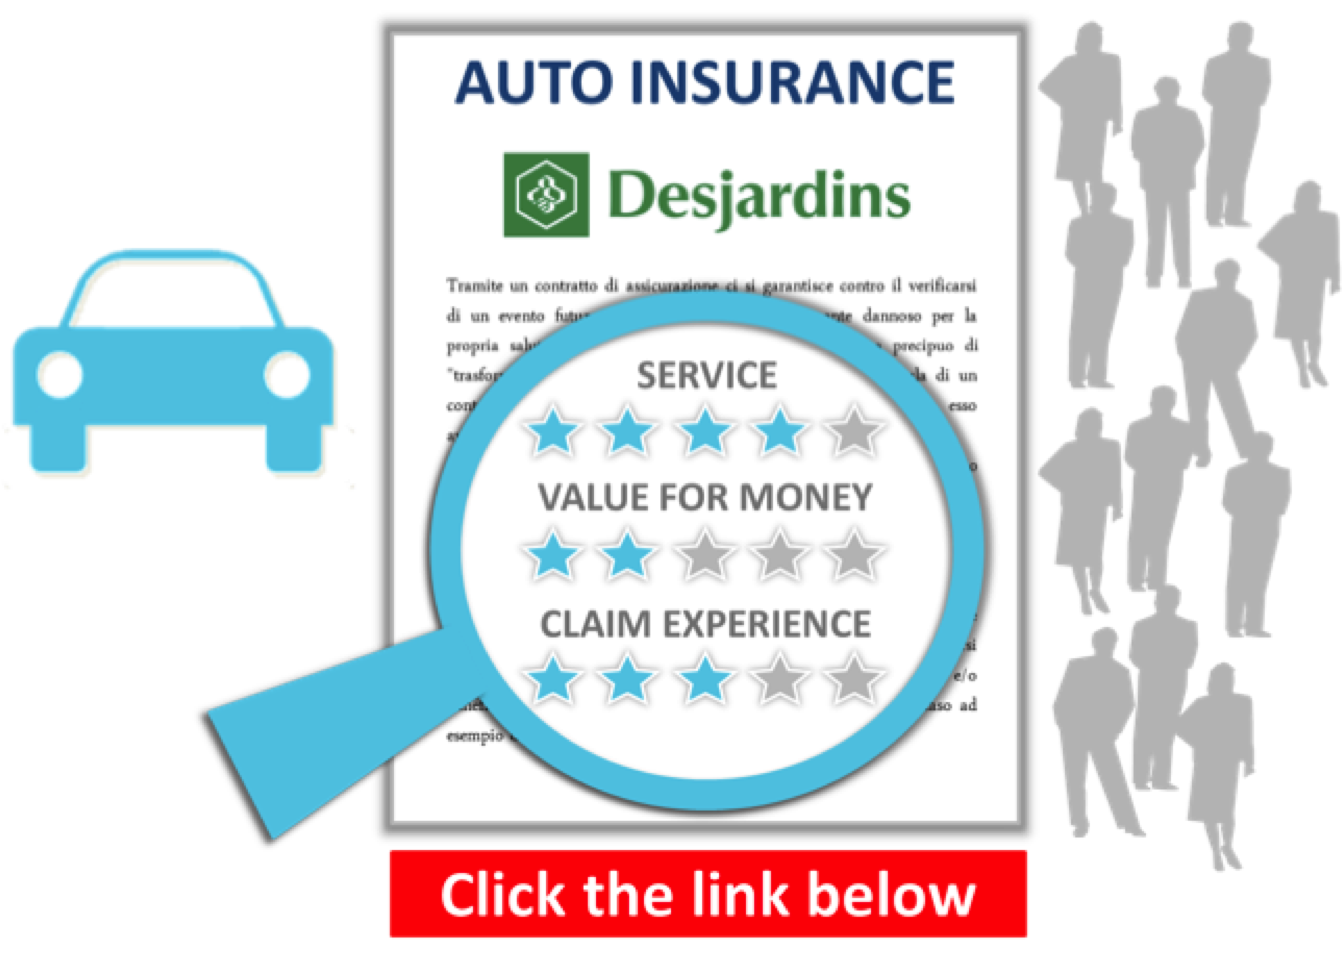 Independent Consumer Reviews for Desjardins Auto Insurance